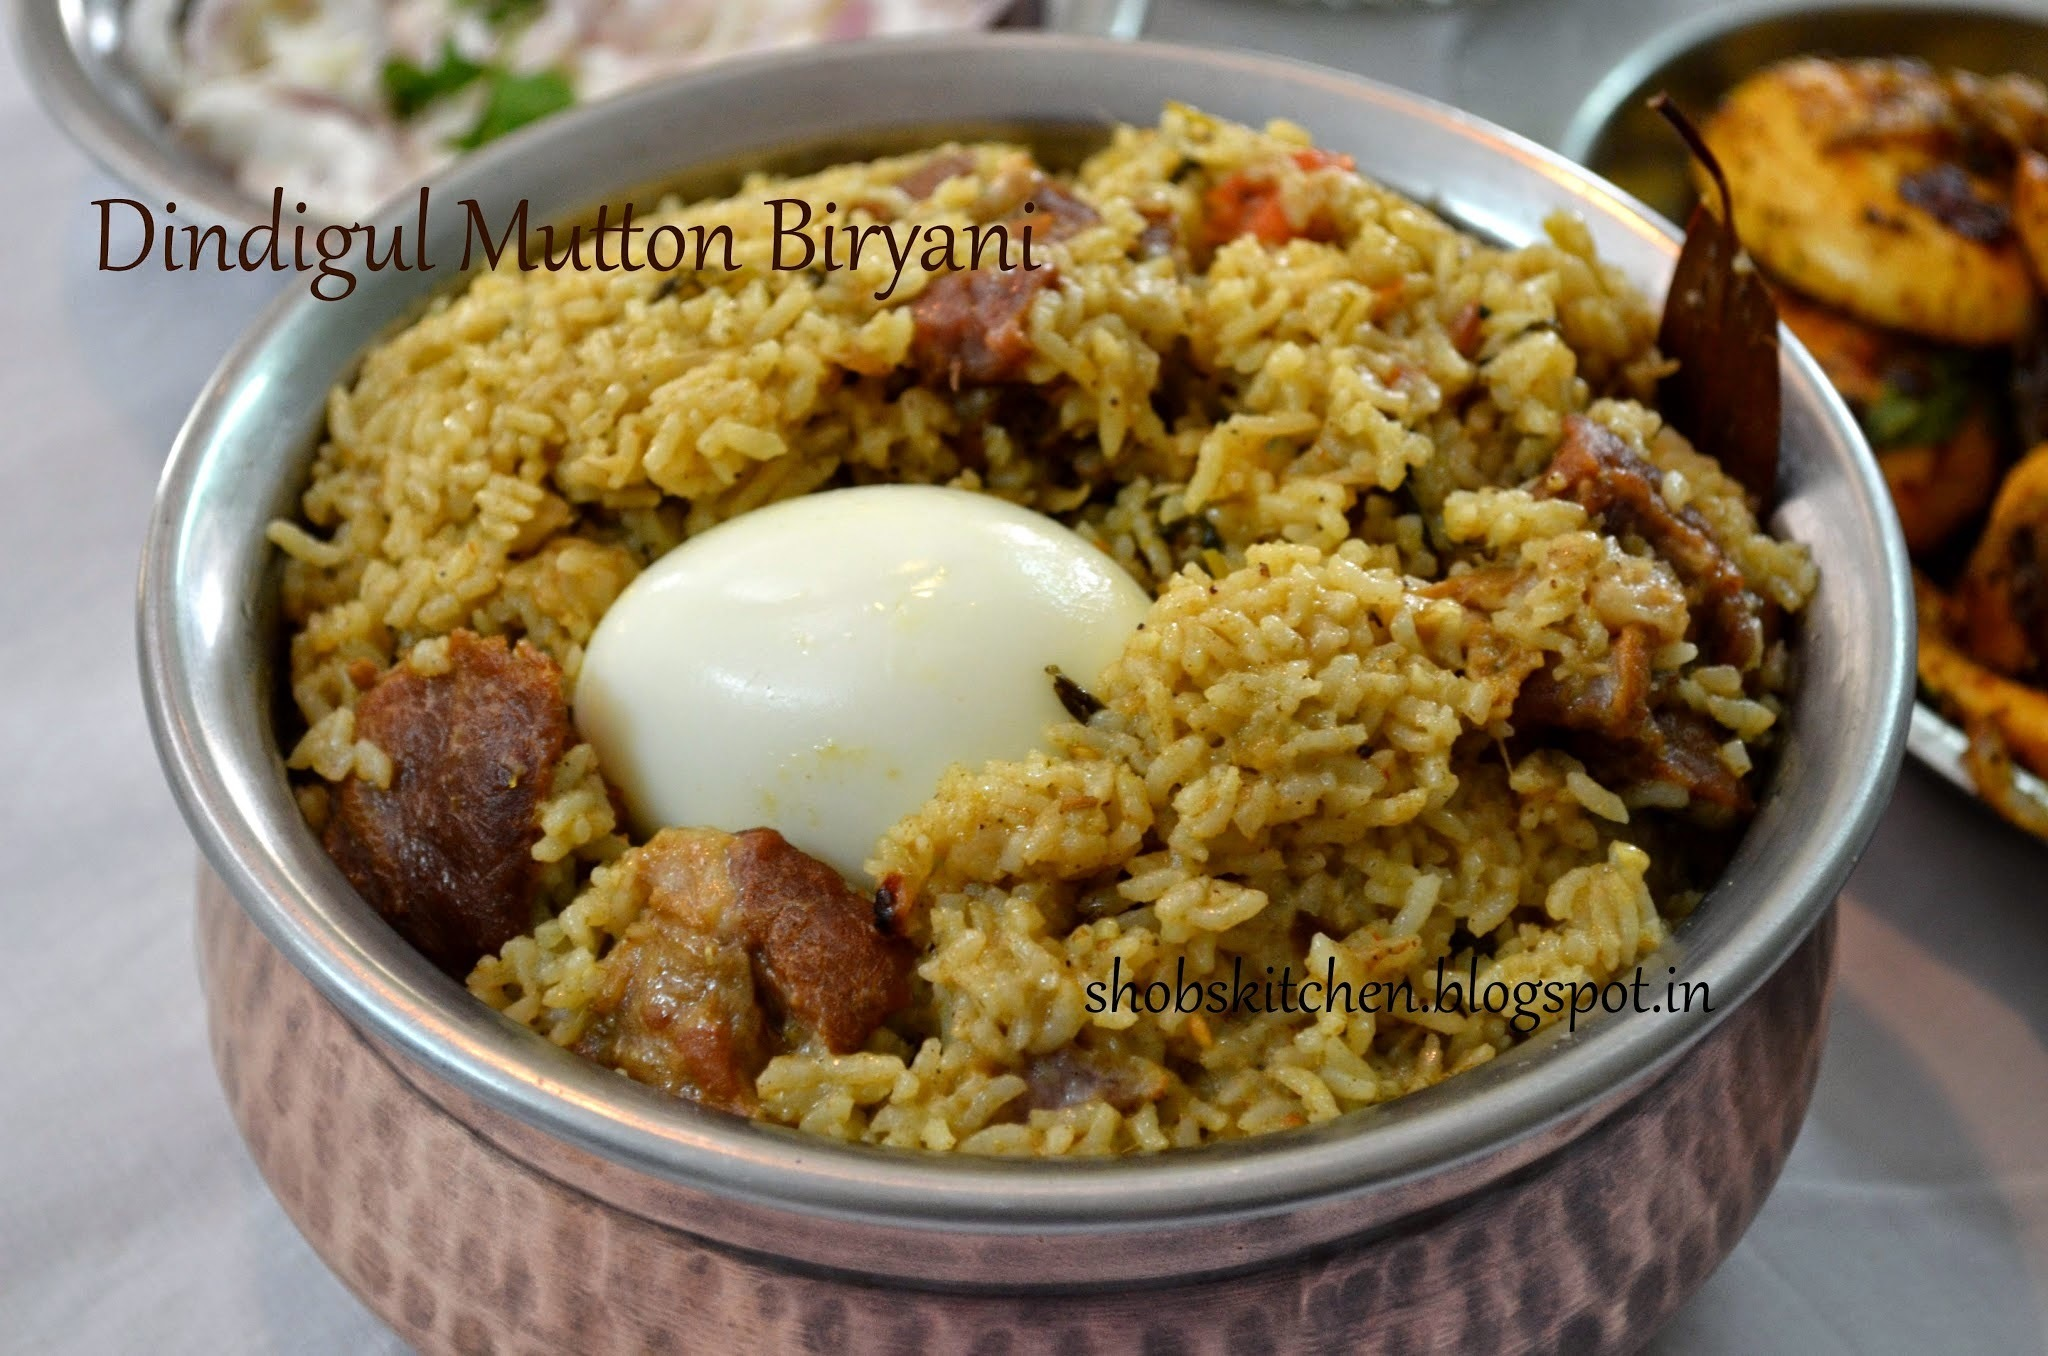 Dindigal Mutton Biryani